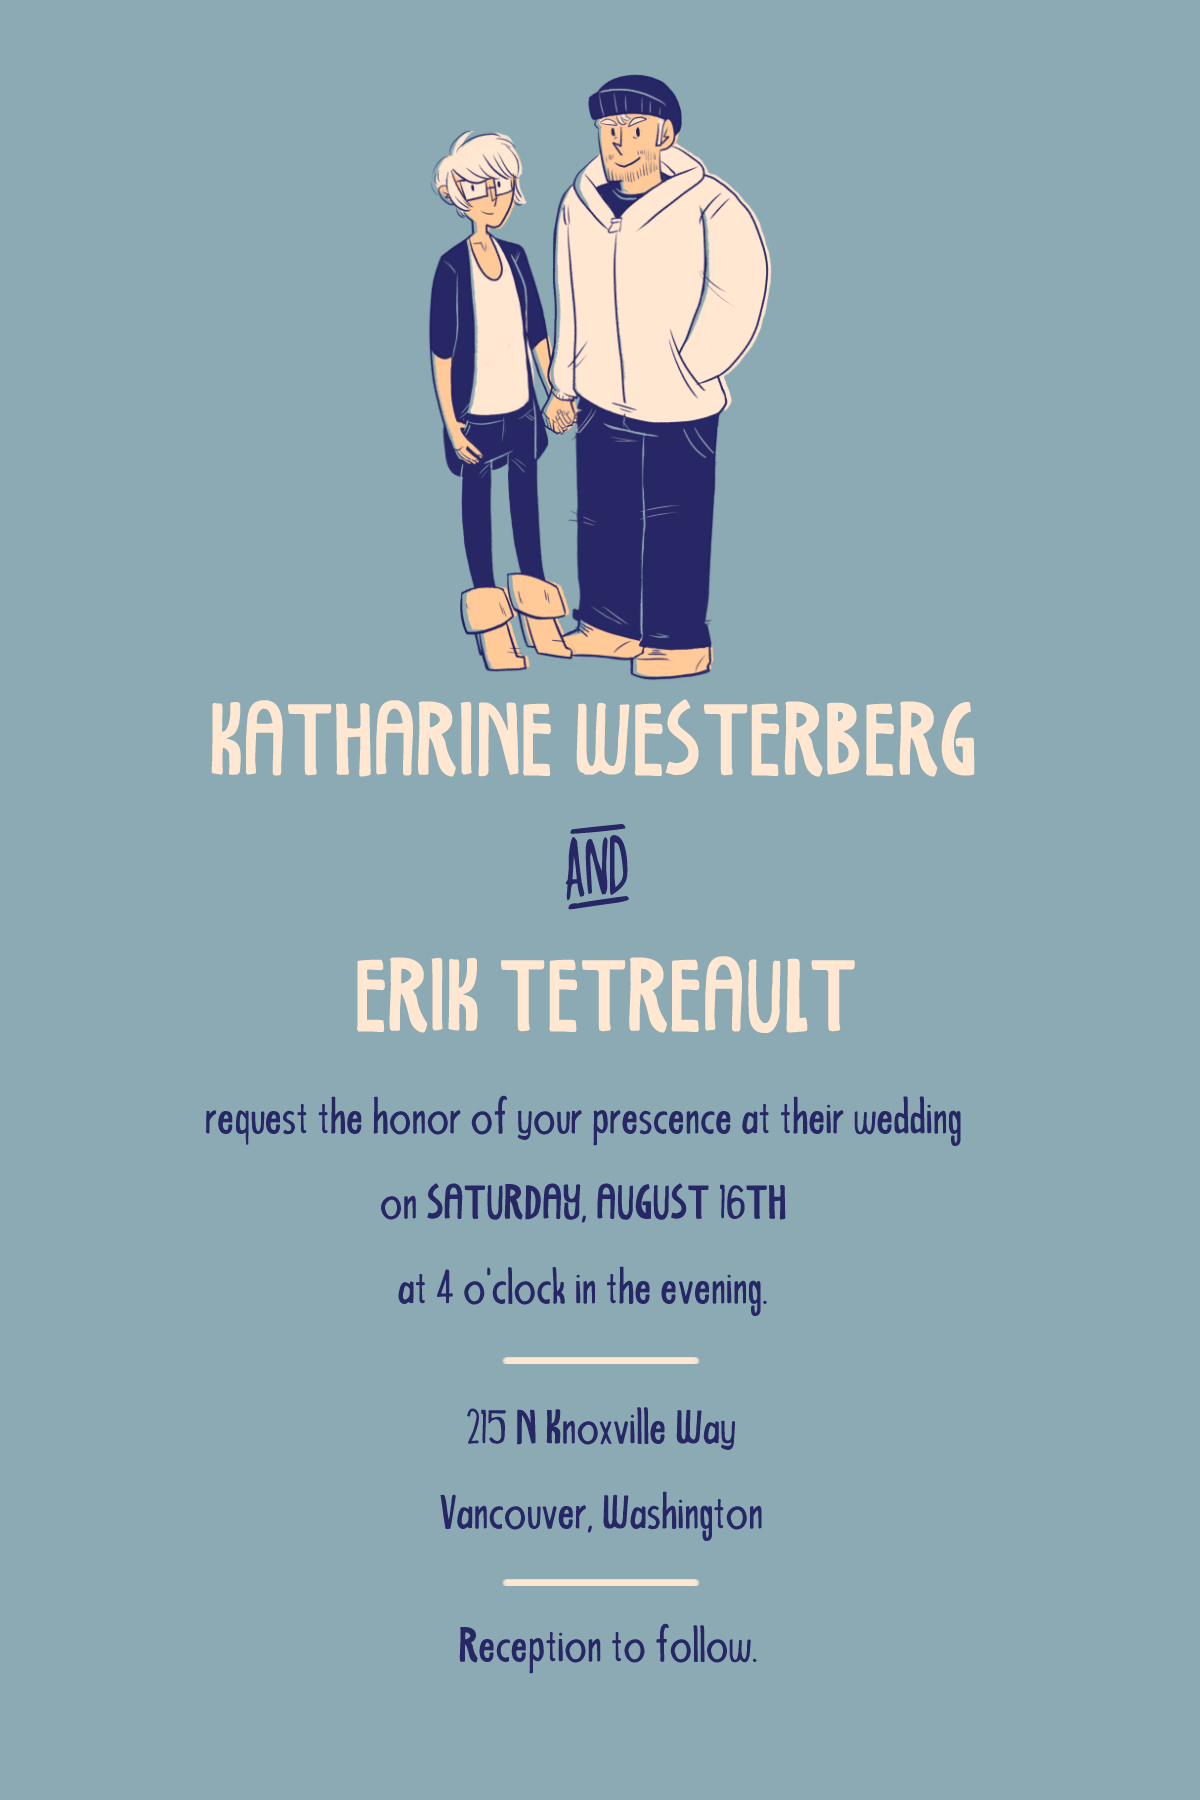 Wedding invitation. 2014.